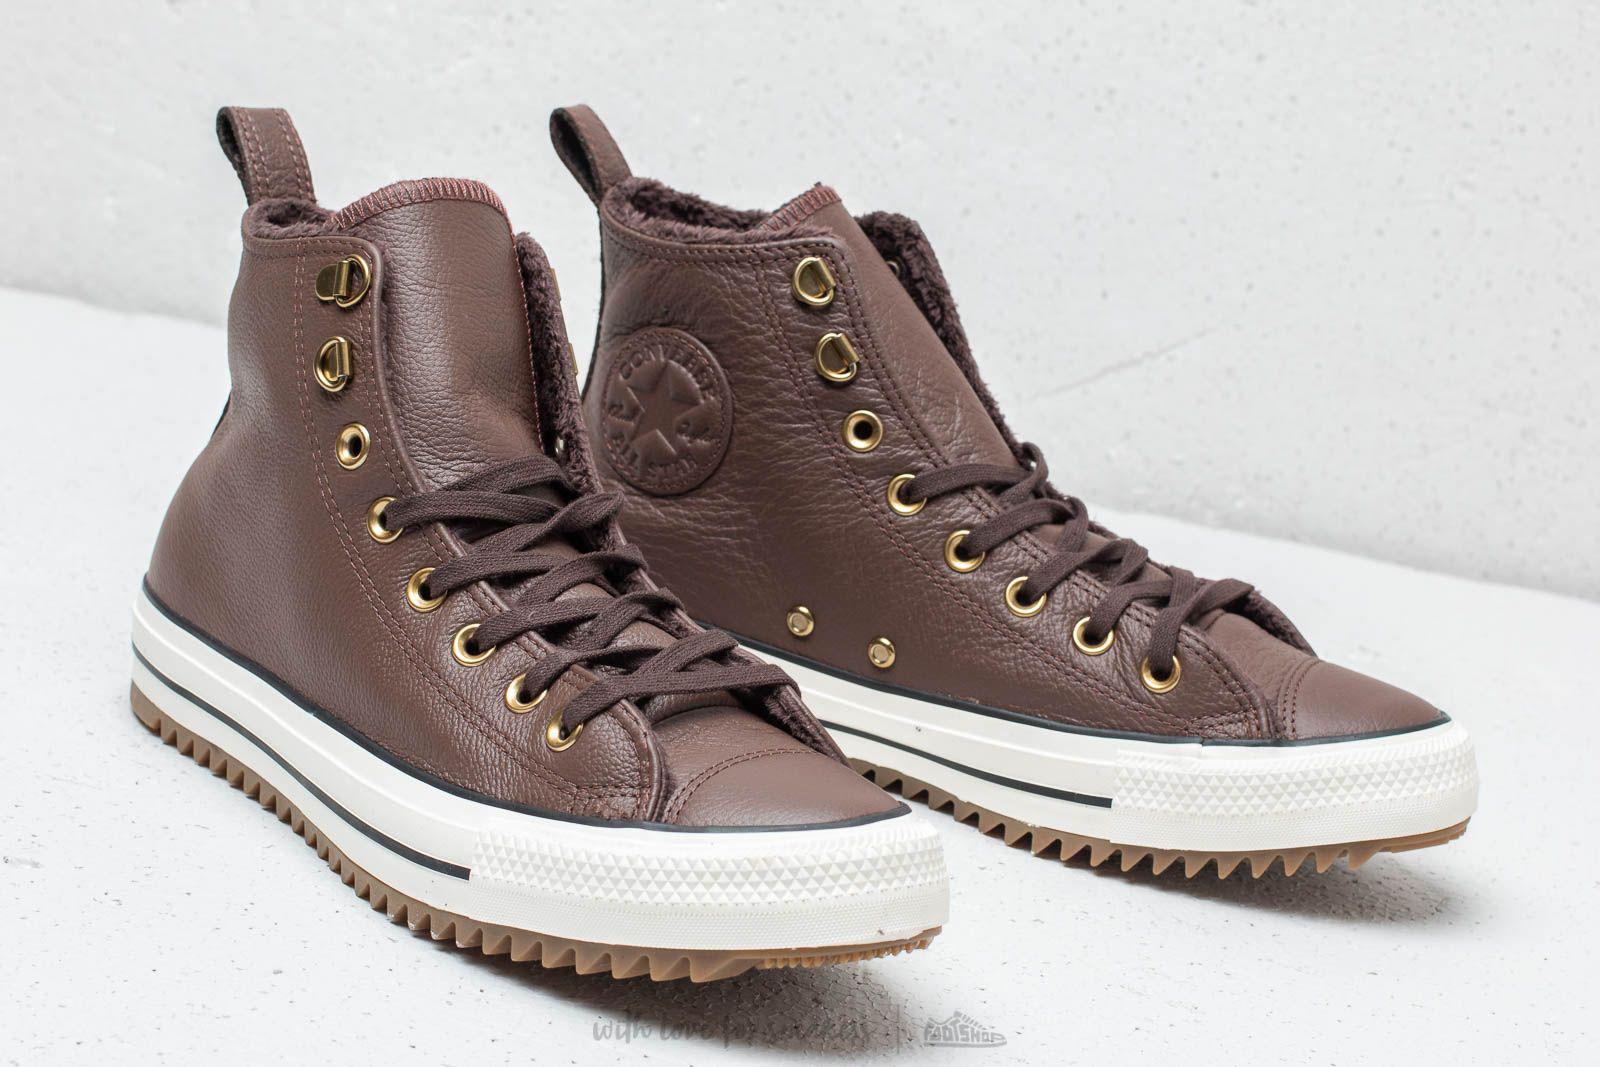 057f5e29d6c971 Lyst - Converse Chuck Taylor All Stars Hiker Boot High Chocolate ...